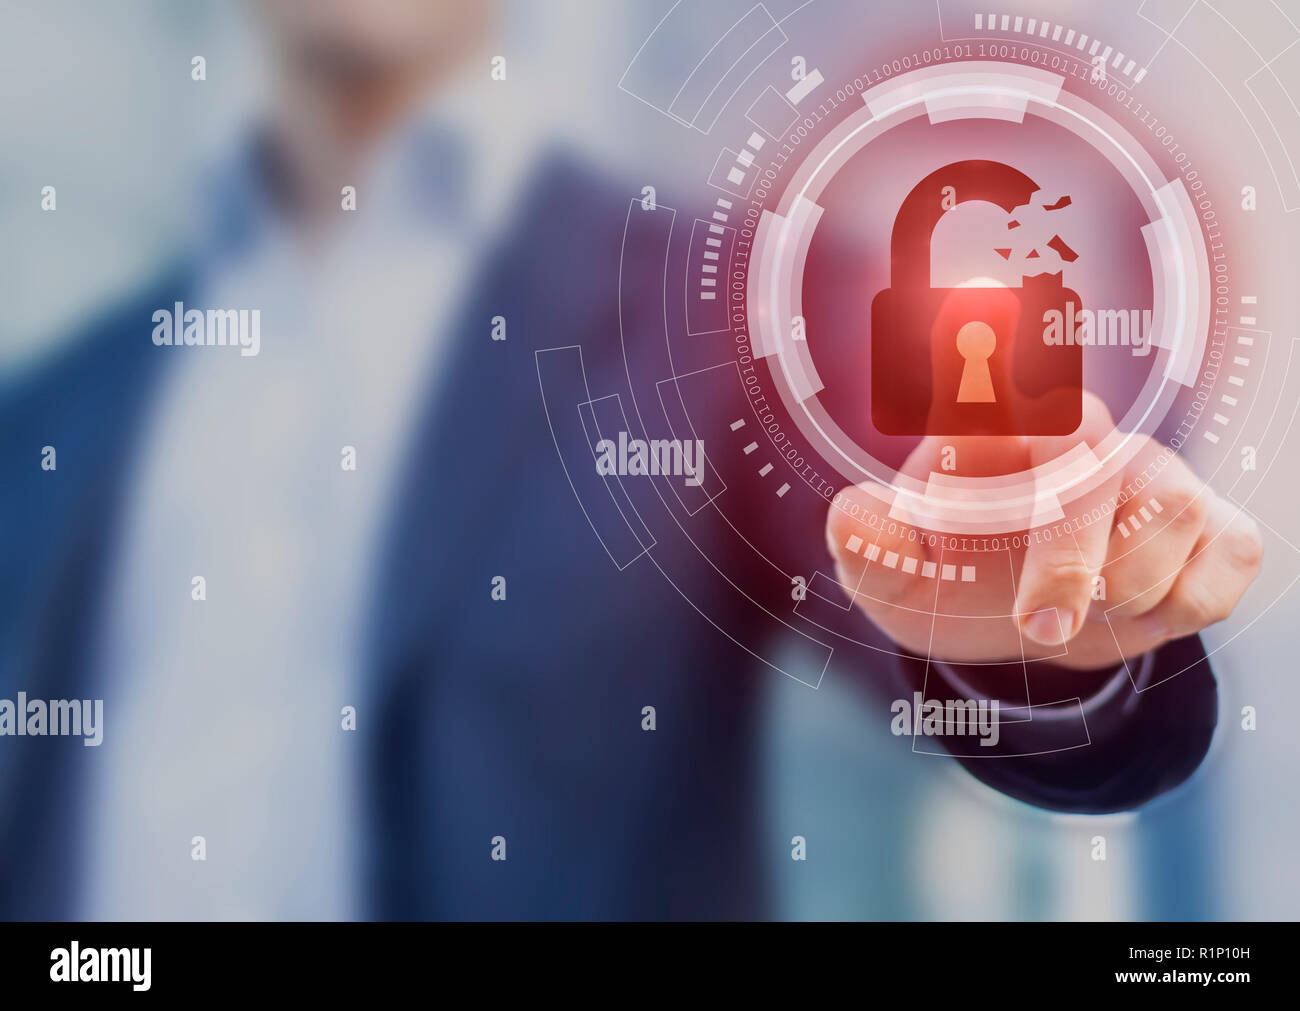 Security breach, system hacked, internet cyber attack alert with red broken padlock icon showing unsecured data, vulnerable access, compromised passwo Stock Photo